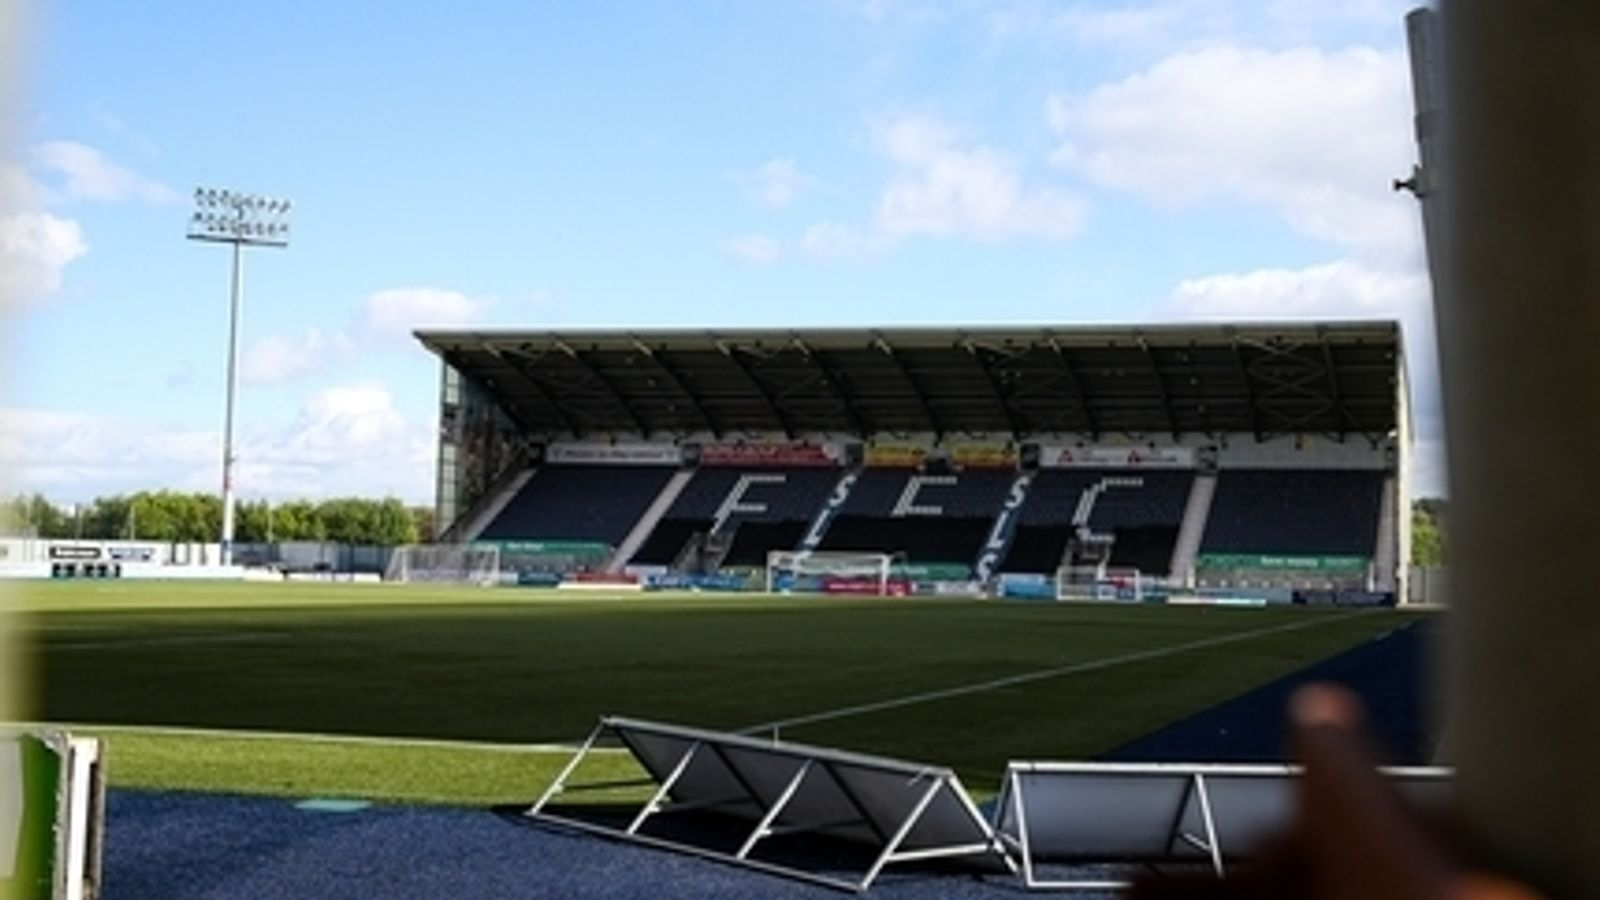 Lower leagues in Scotland suspended for three weeks